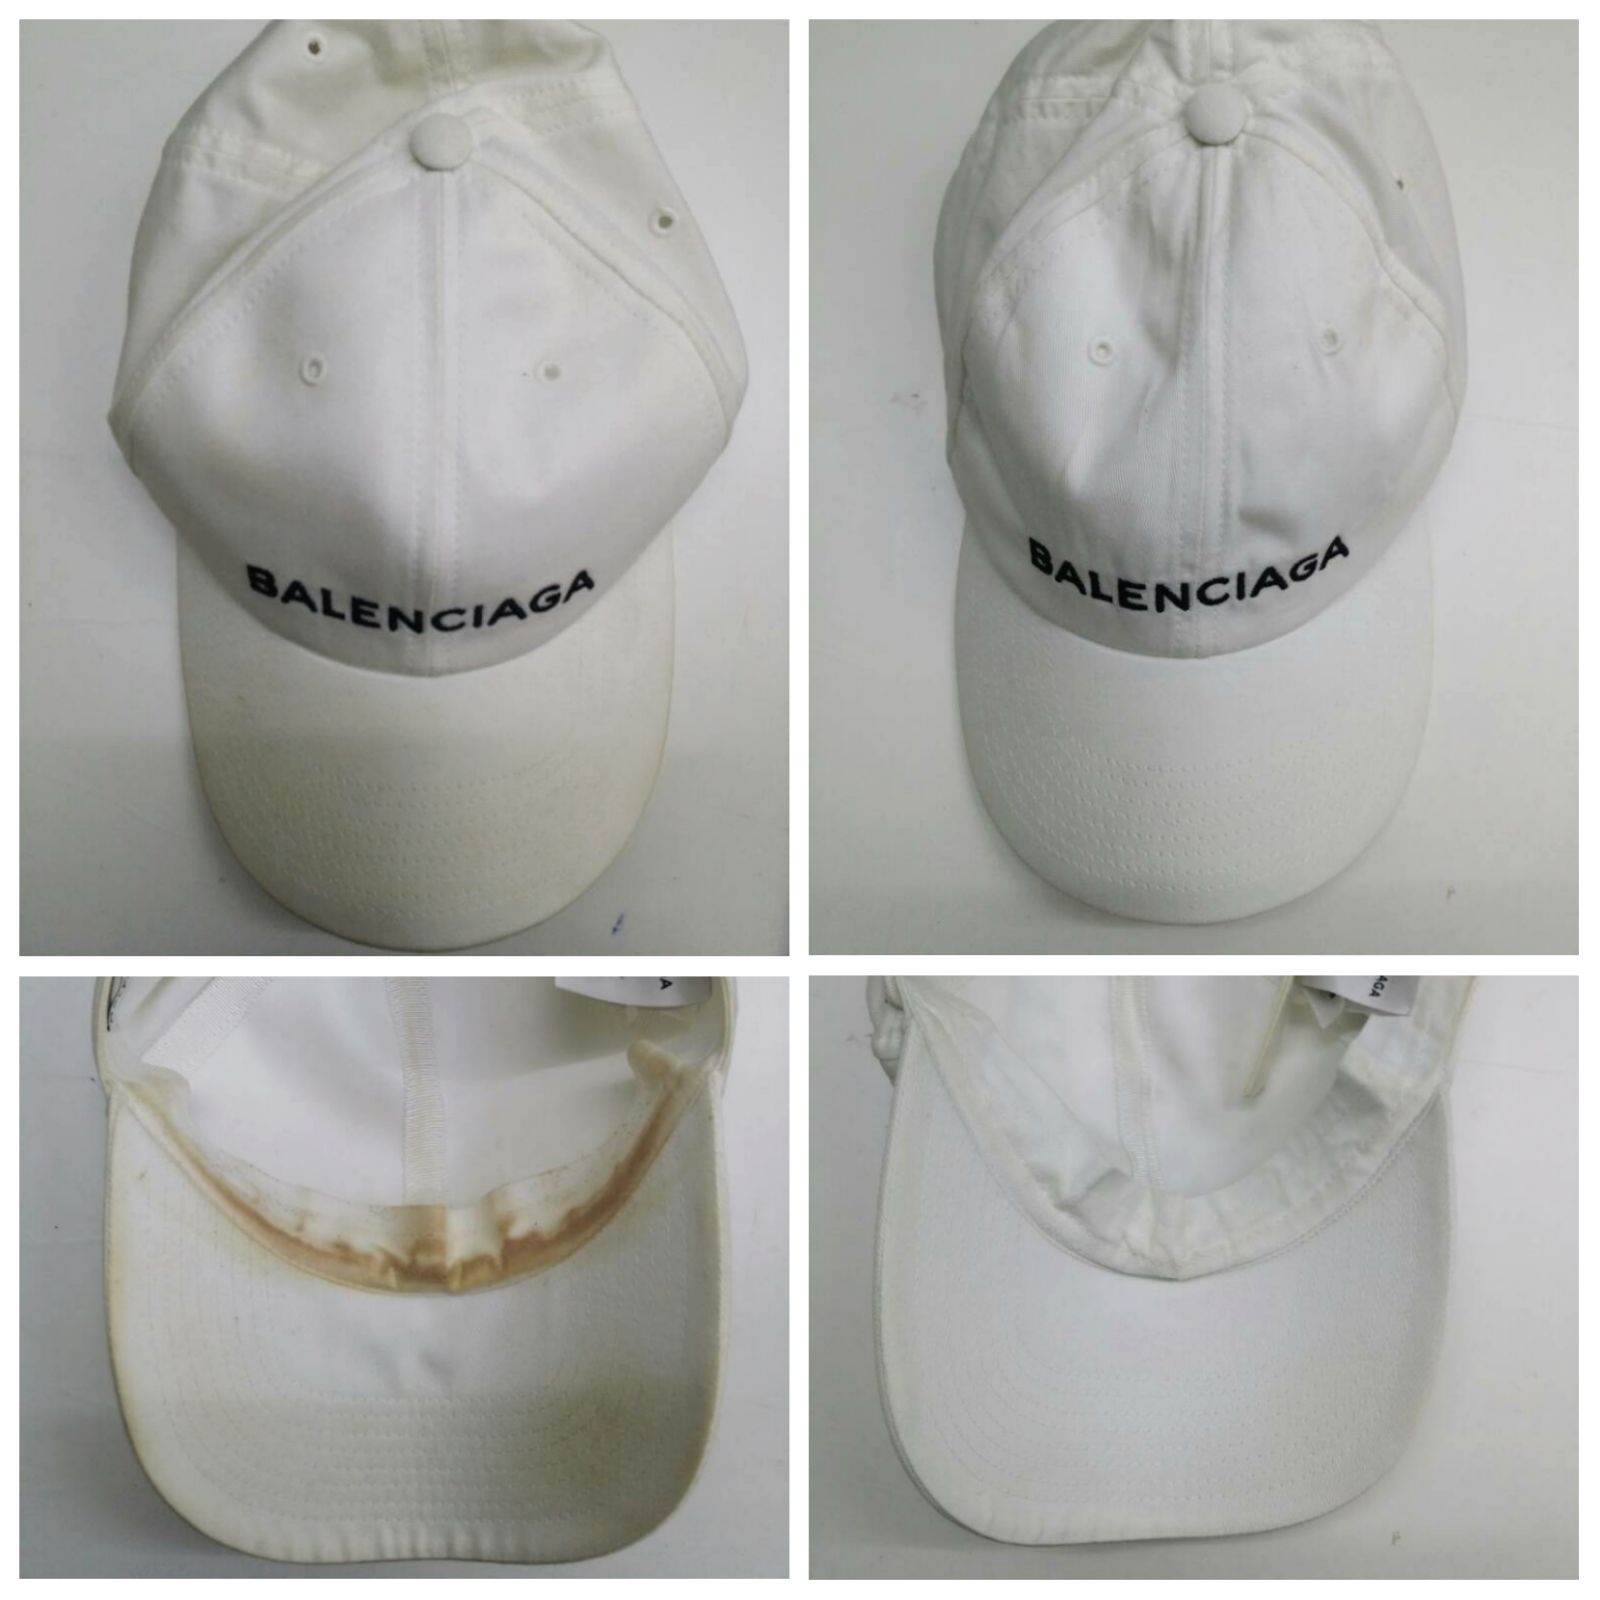 Balenciaga Cap Cleaning